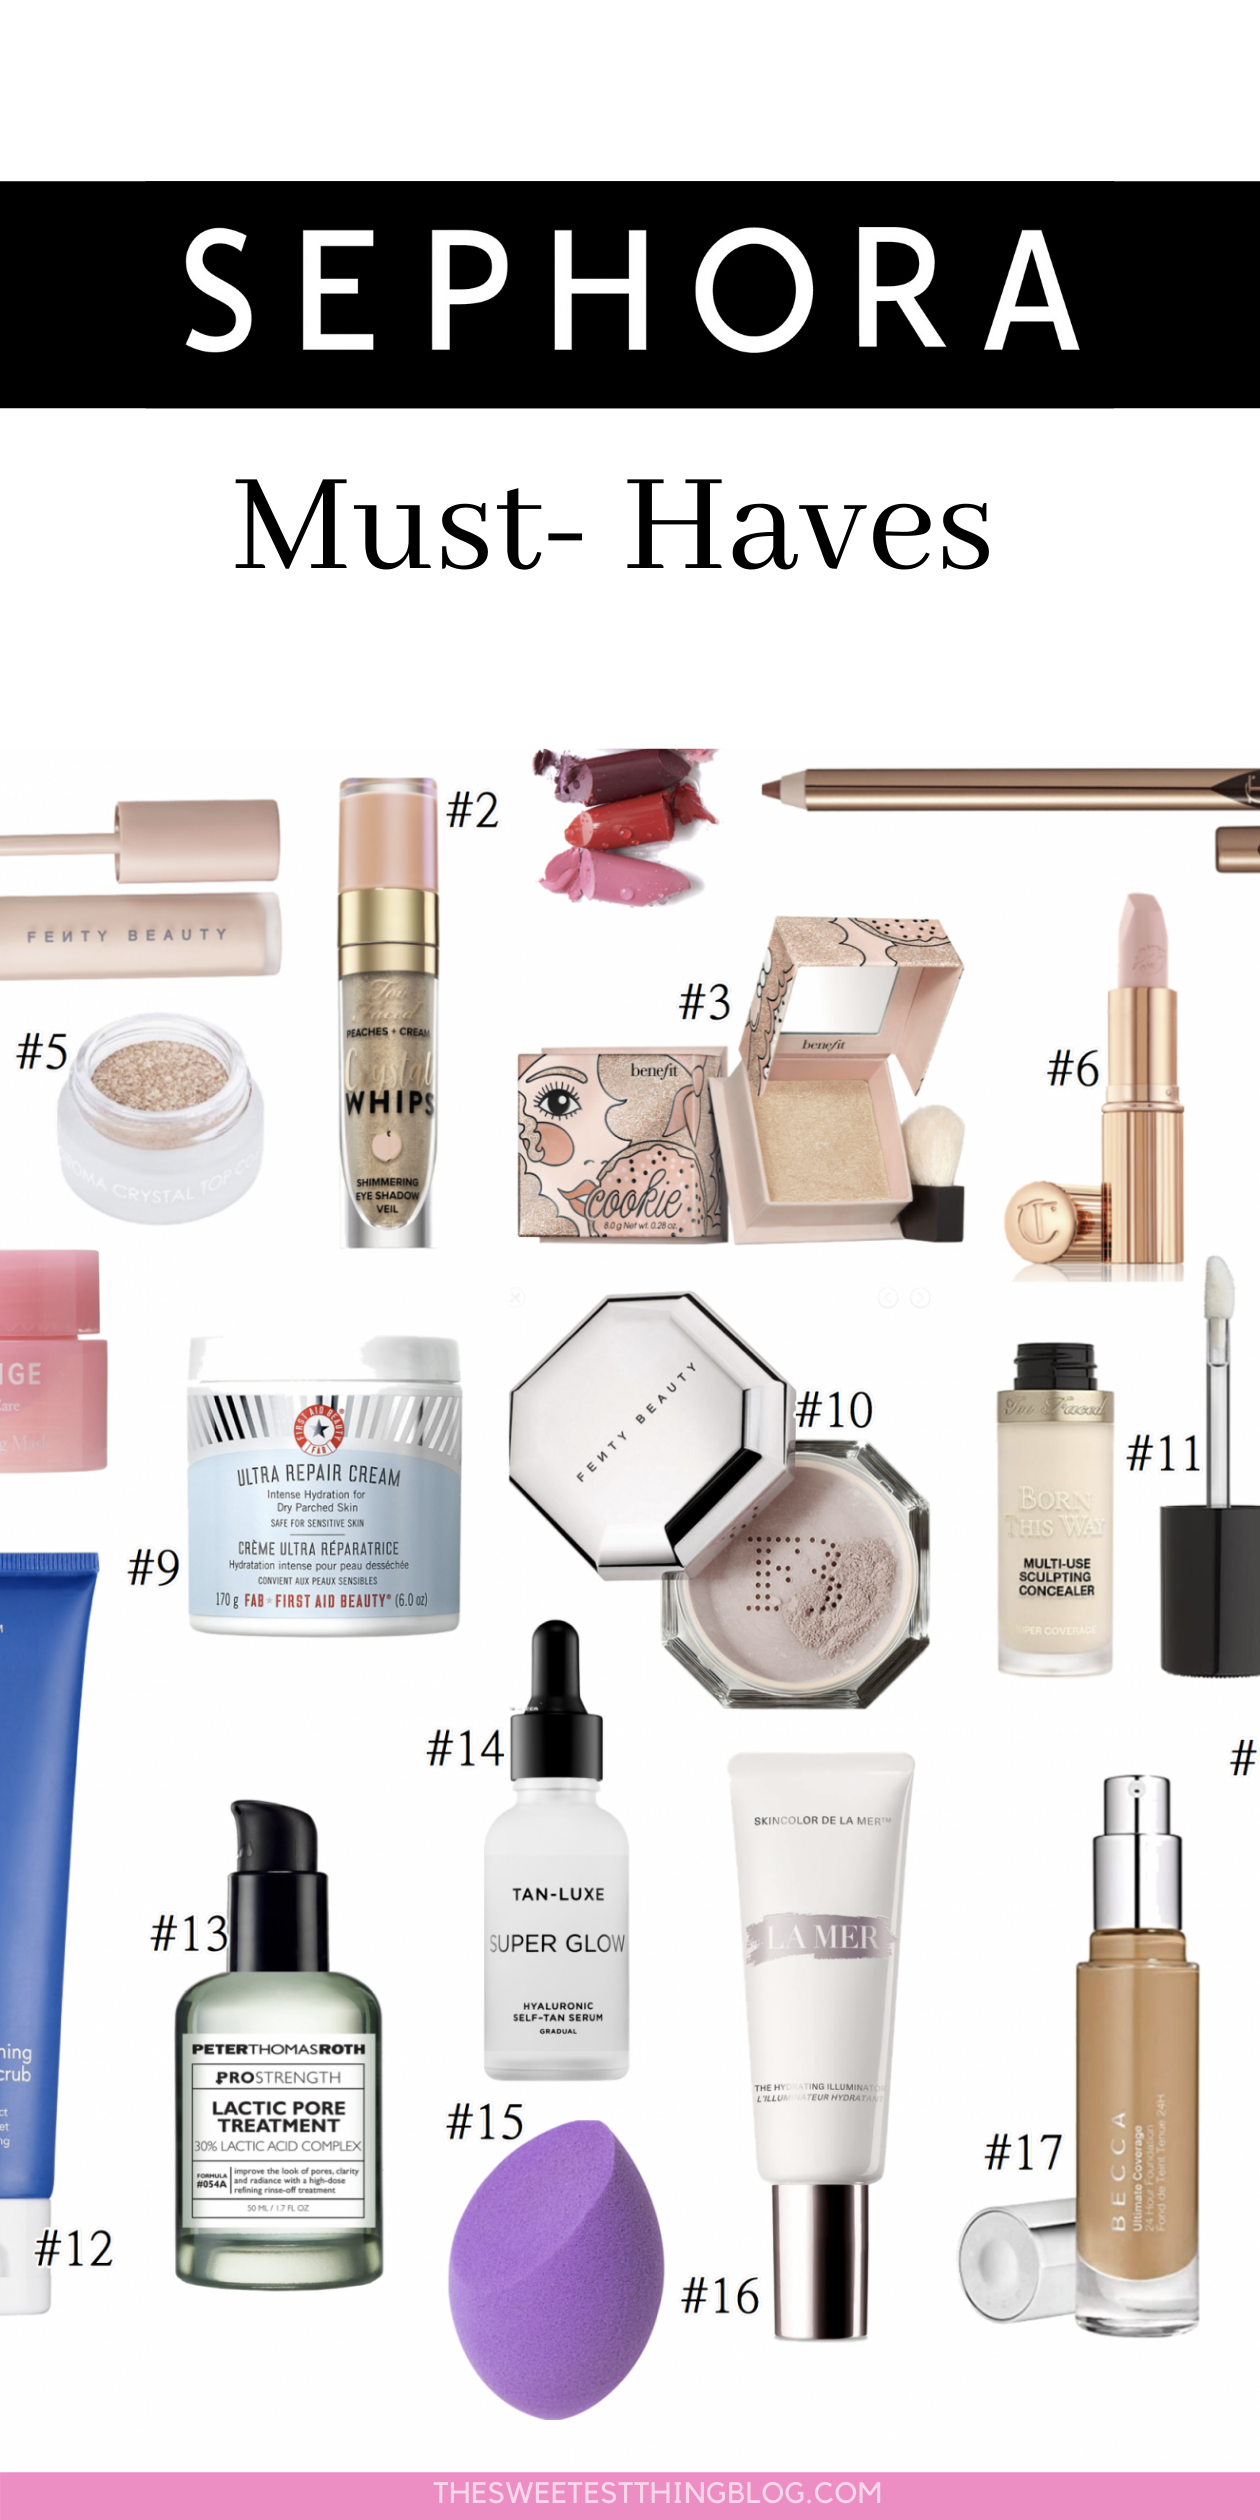 Sephora Must Haves Vib Sale Event 2019 Best Makeup And Beauty Products And Tools For Women In 2020 Sephora Eyeliner Best Makeup Products Sephora Liquid Lipstick